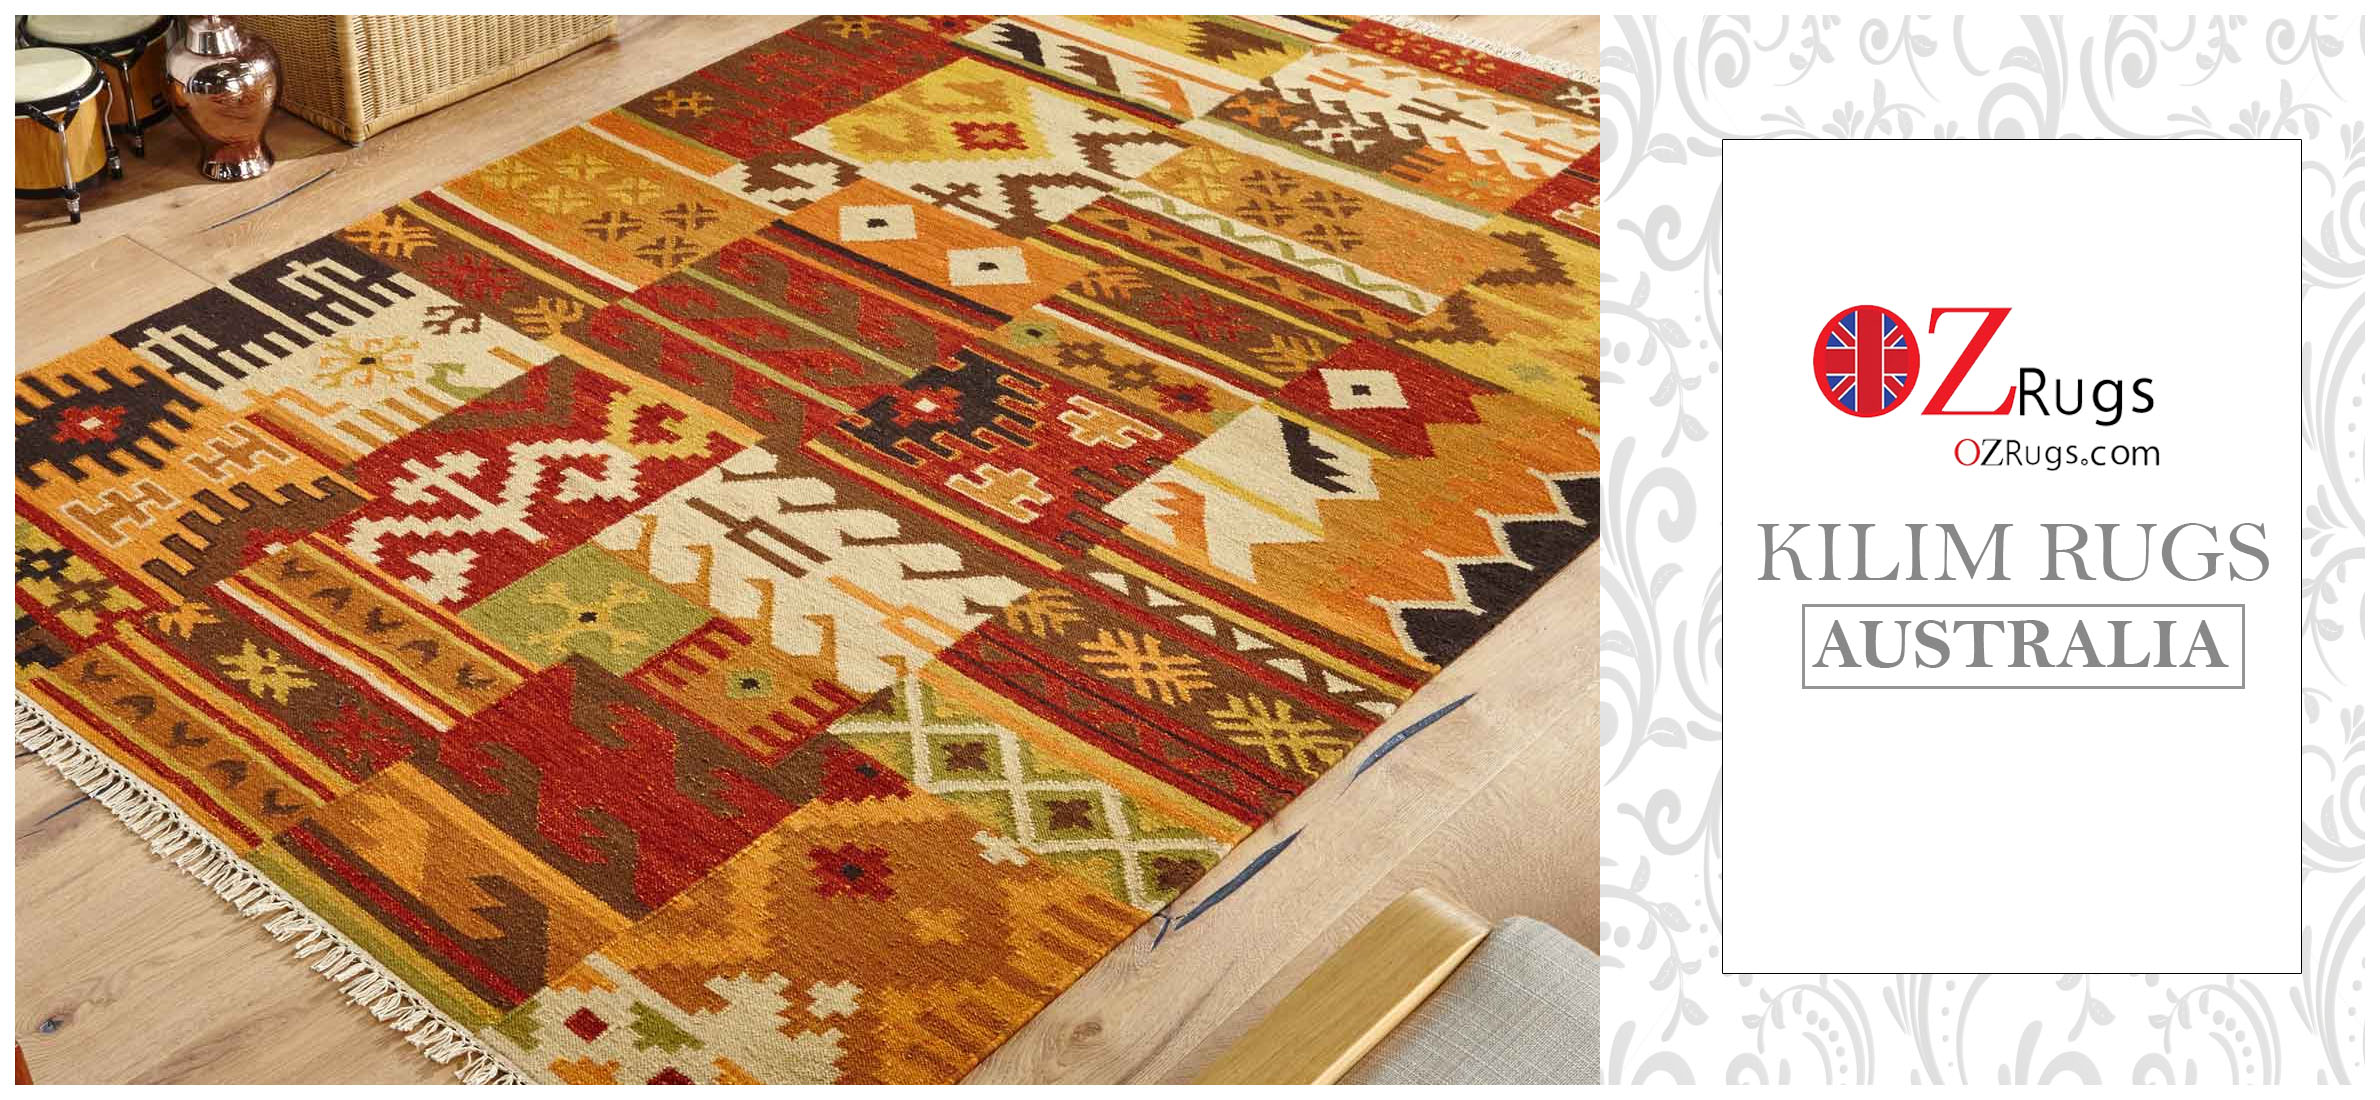 Online Rugs Kilim Rugs The Perfect Rugs Online For Home Decor Oz Rugs